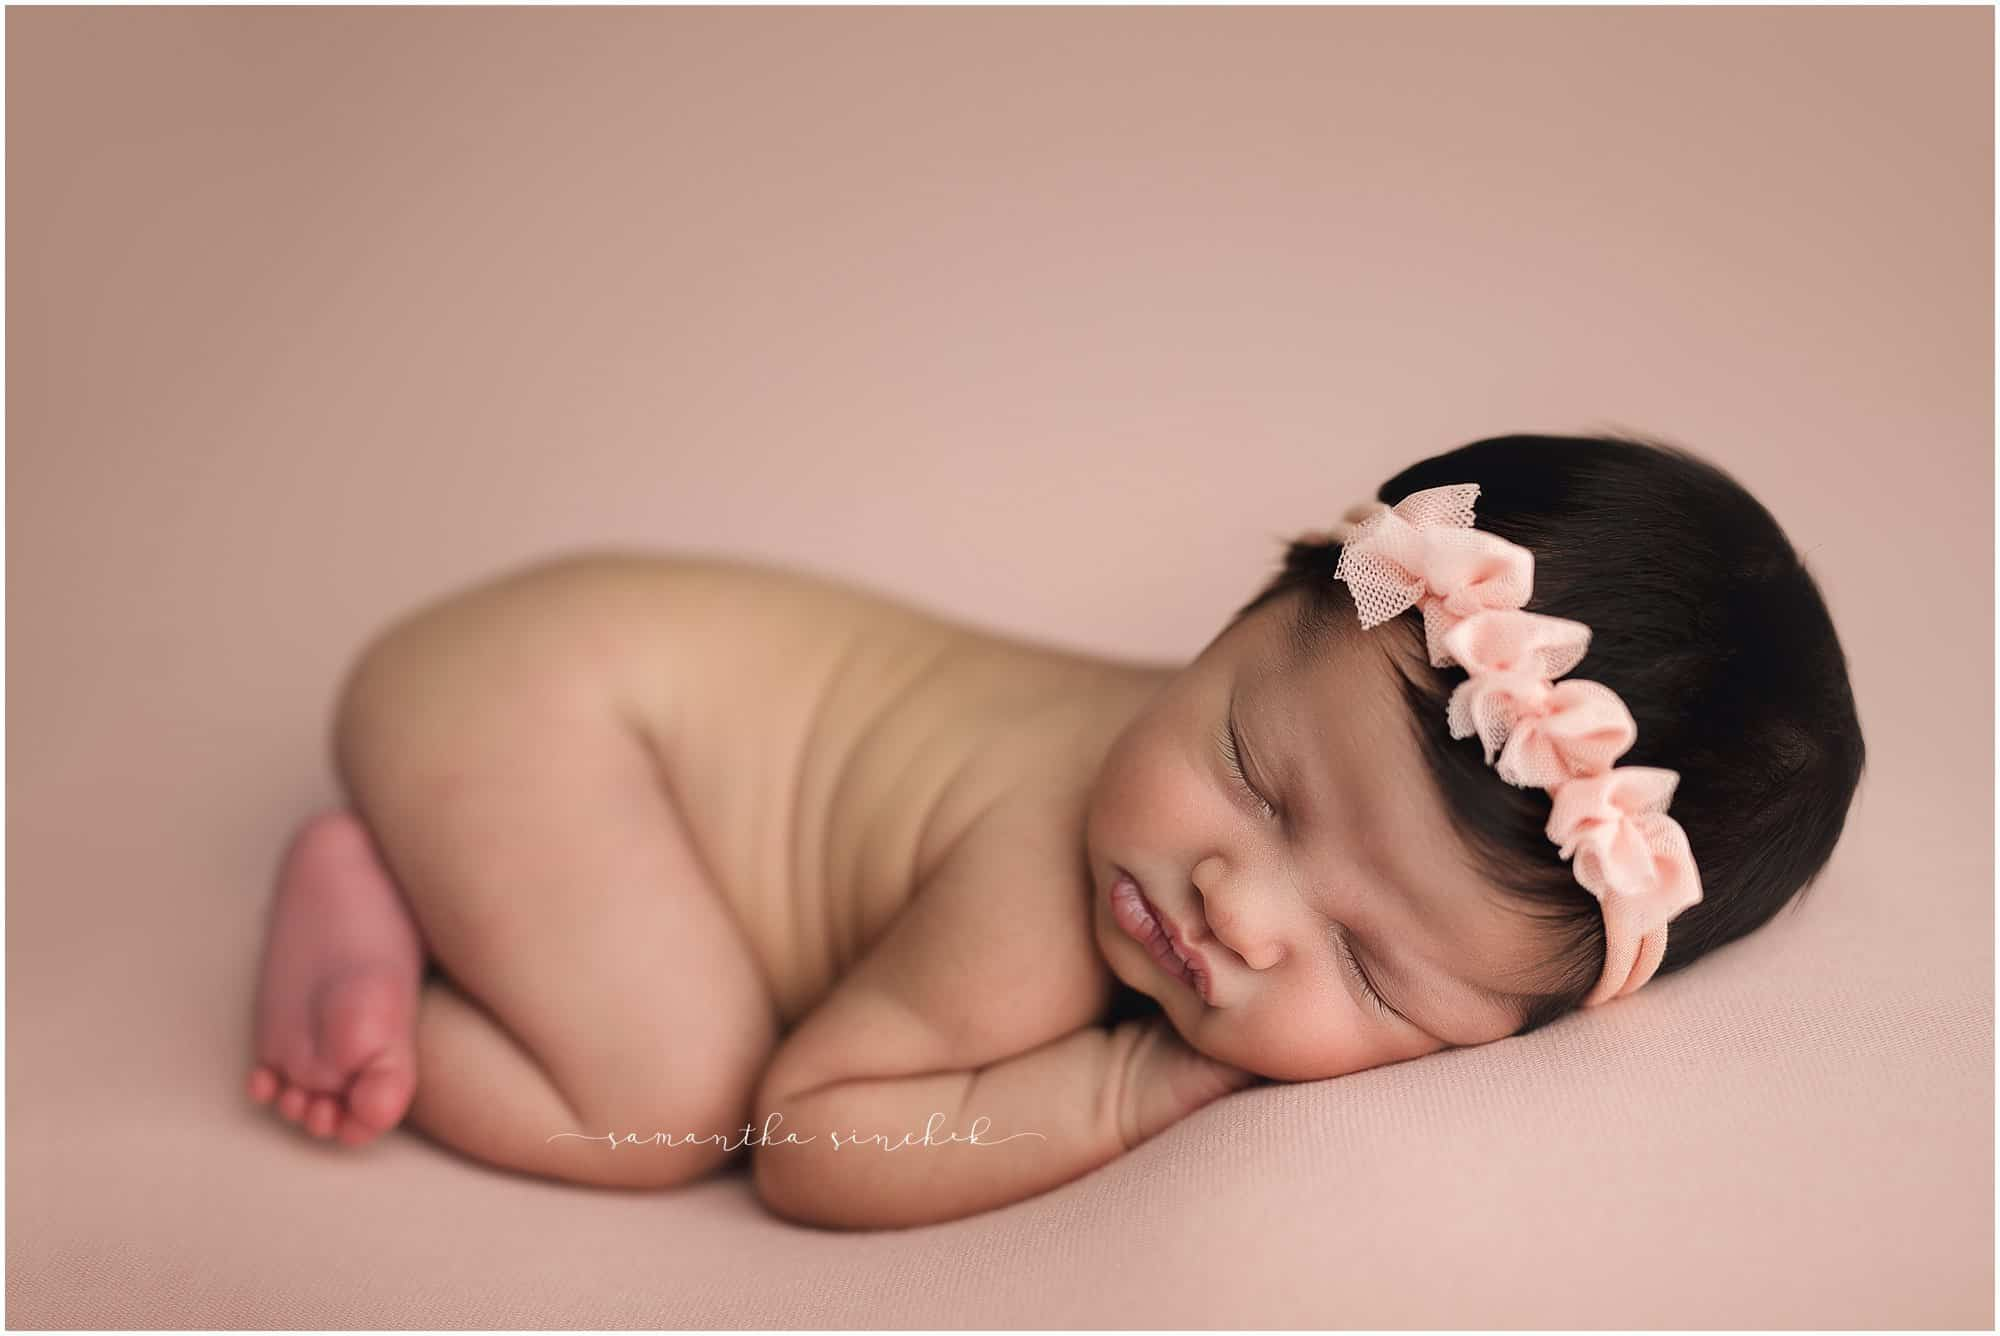 cincinnati newborn baby photographer Samantha sinchek creates stunning newborn pictures at her studio in loveland ohio